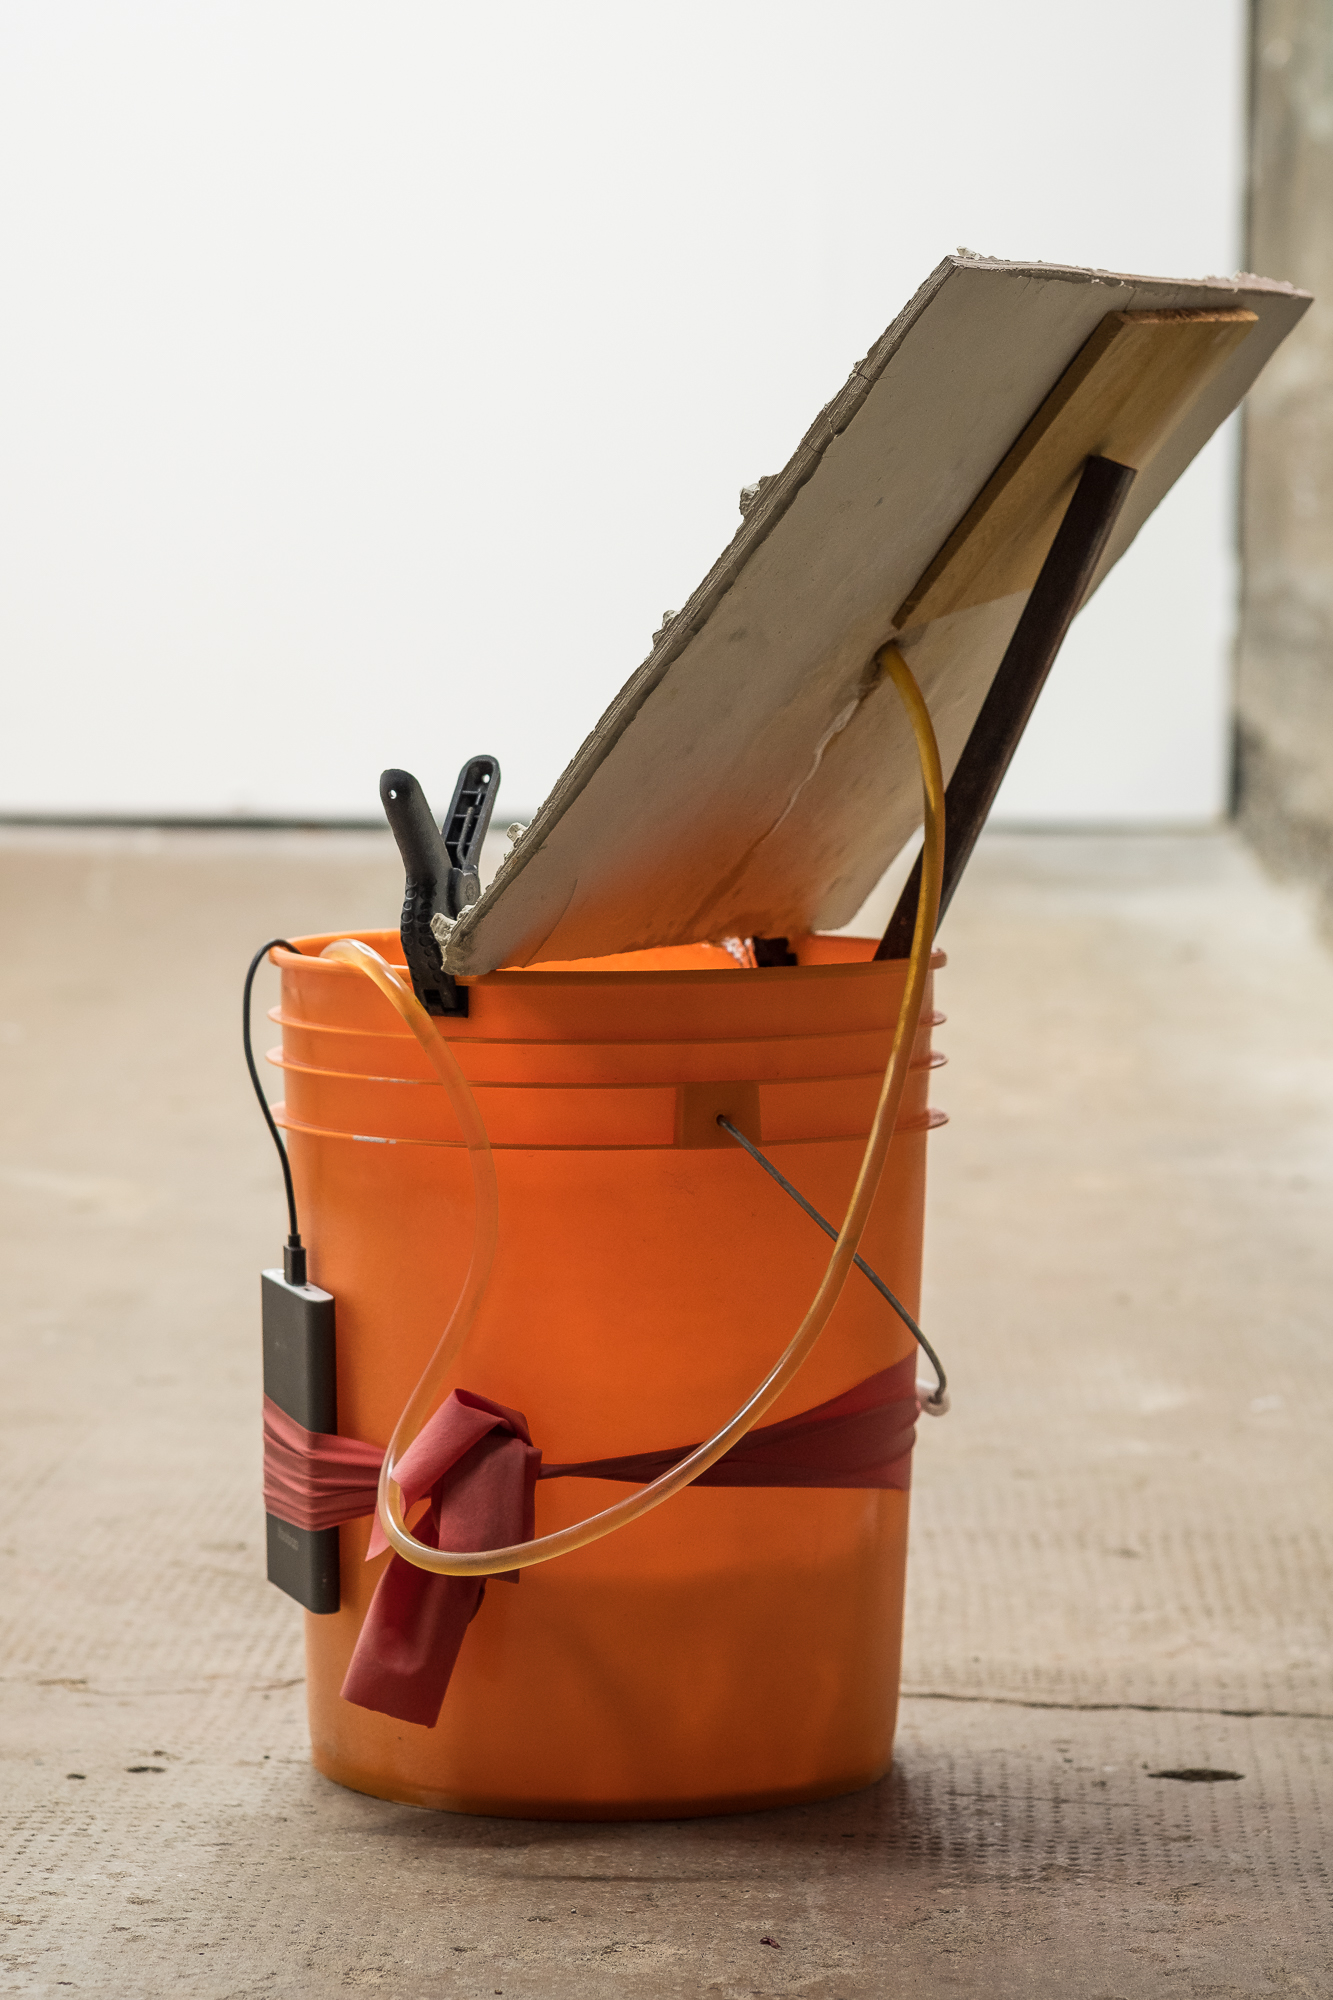 Shanie Tomassini, Leaking Hurricane, 2018. Cement, metal, water, rust, bucket, clamps, plastic tubing, USB pump, power bank, resistance band [Photo by Morgane Clément-Gagnon]